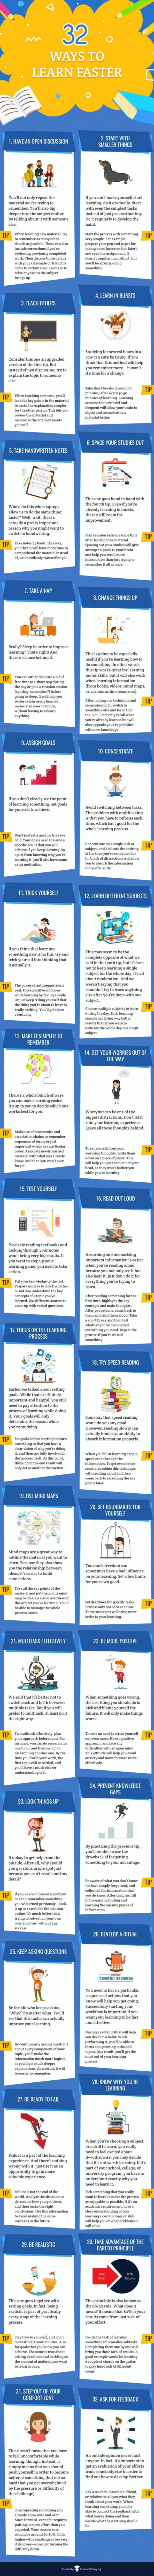 Boost Your Learning Capacity Infographic